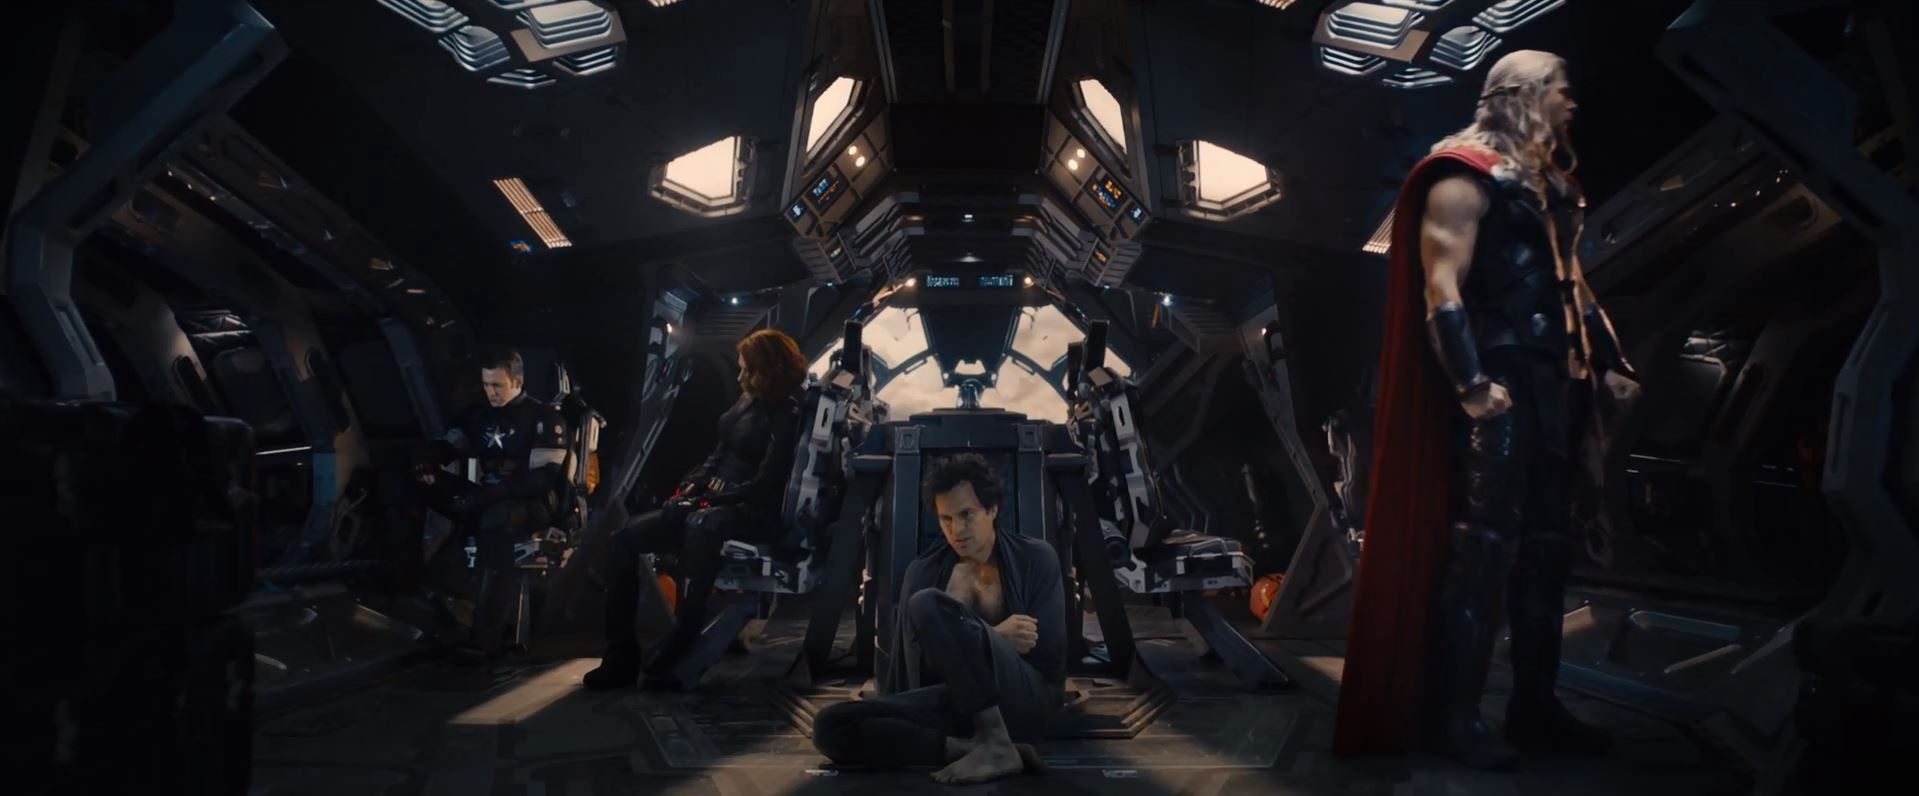 Avengers Age Of Ultron Trailer Released - avengers defeated (Thor, Hulk, Black Widow and Captain America)